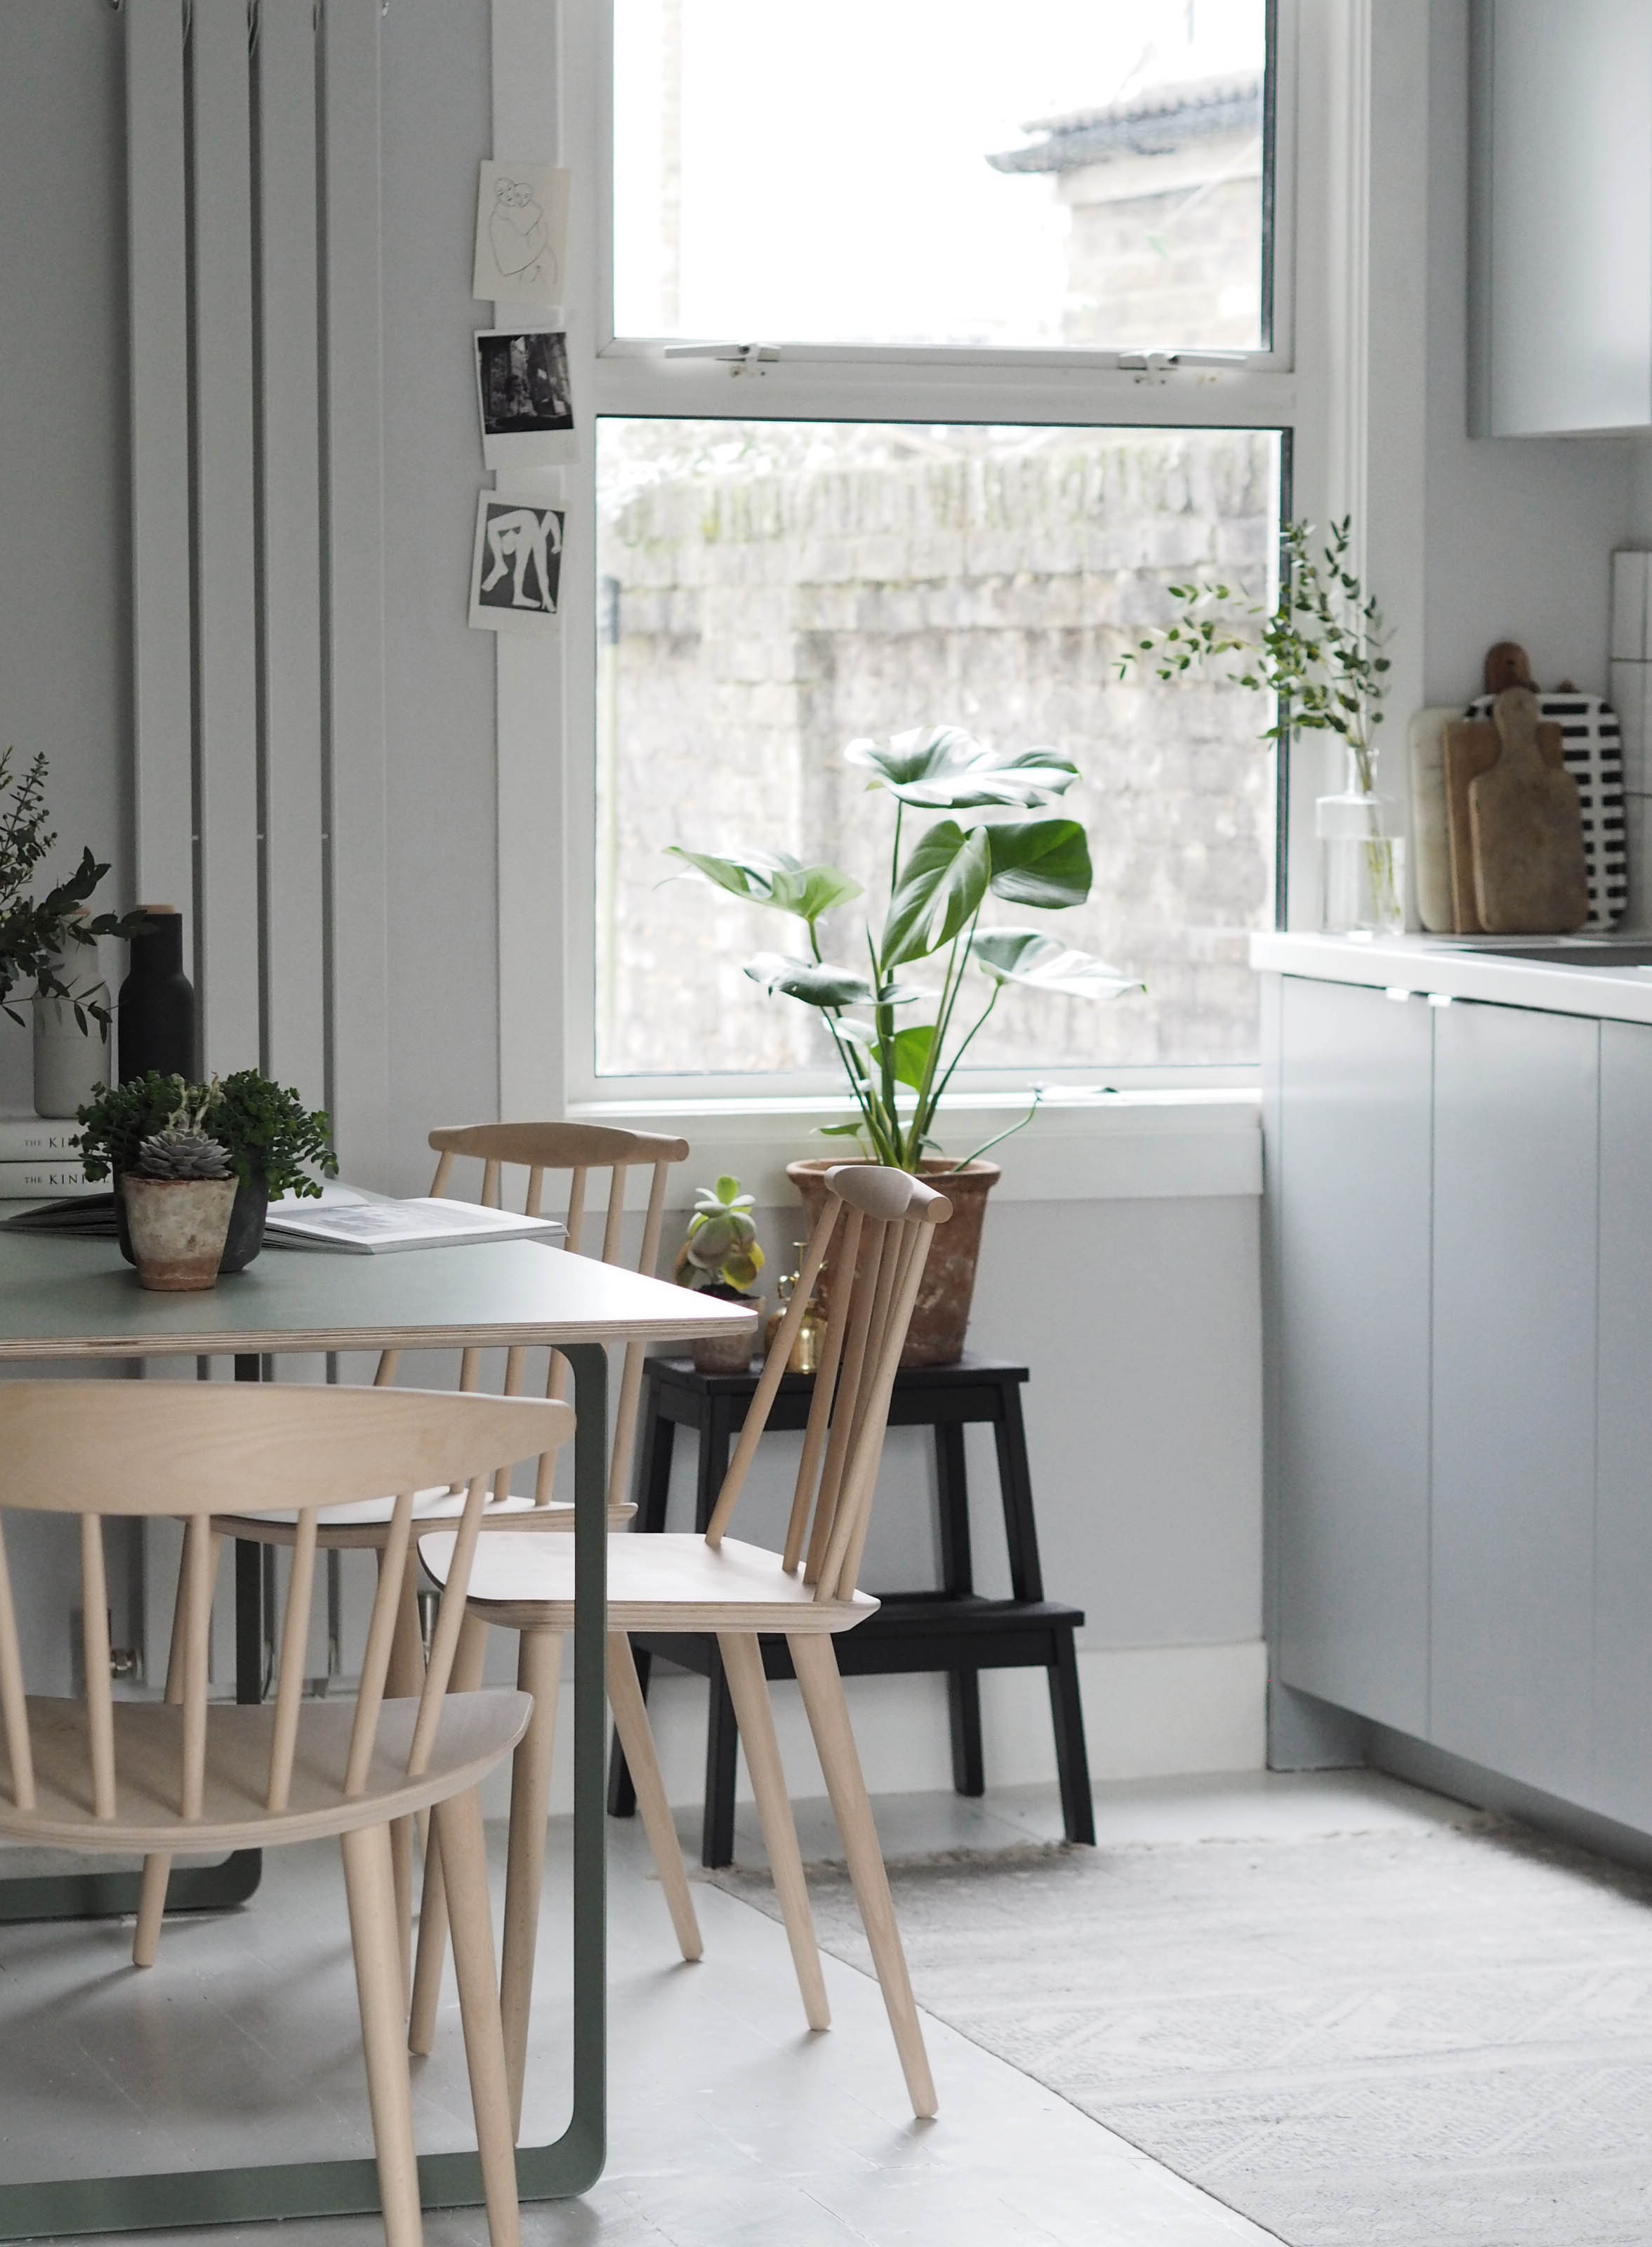 Muuto 70 70 Table In Green Modern Scandinavian Design Dining Table Plants In The Home Cate St Hill